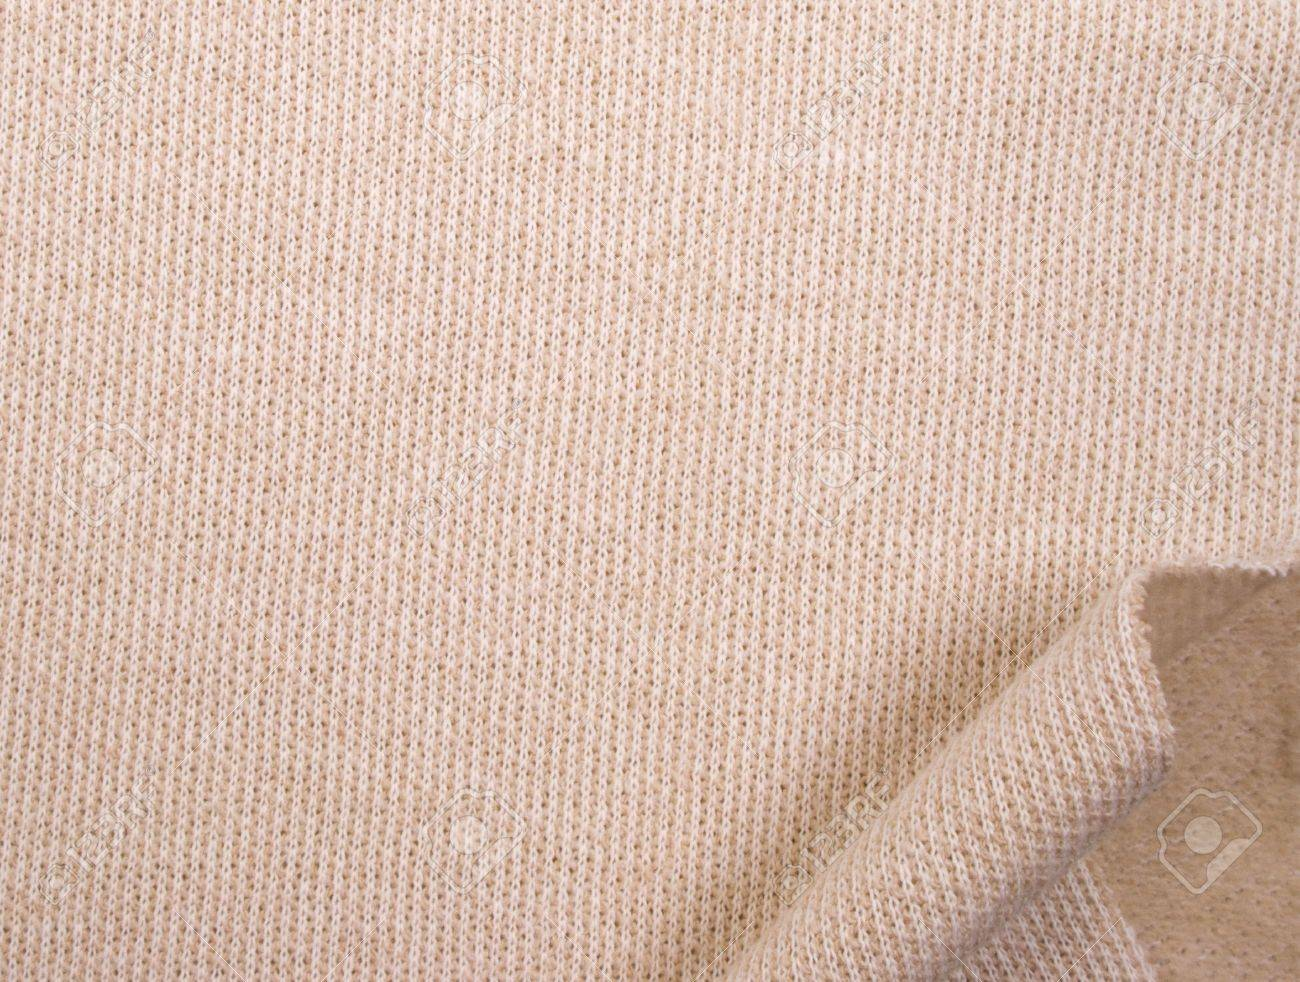 Textile Cotton Sample Texture Stock Photo, Picture And Royalty ...